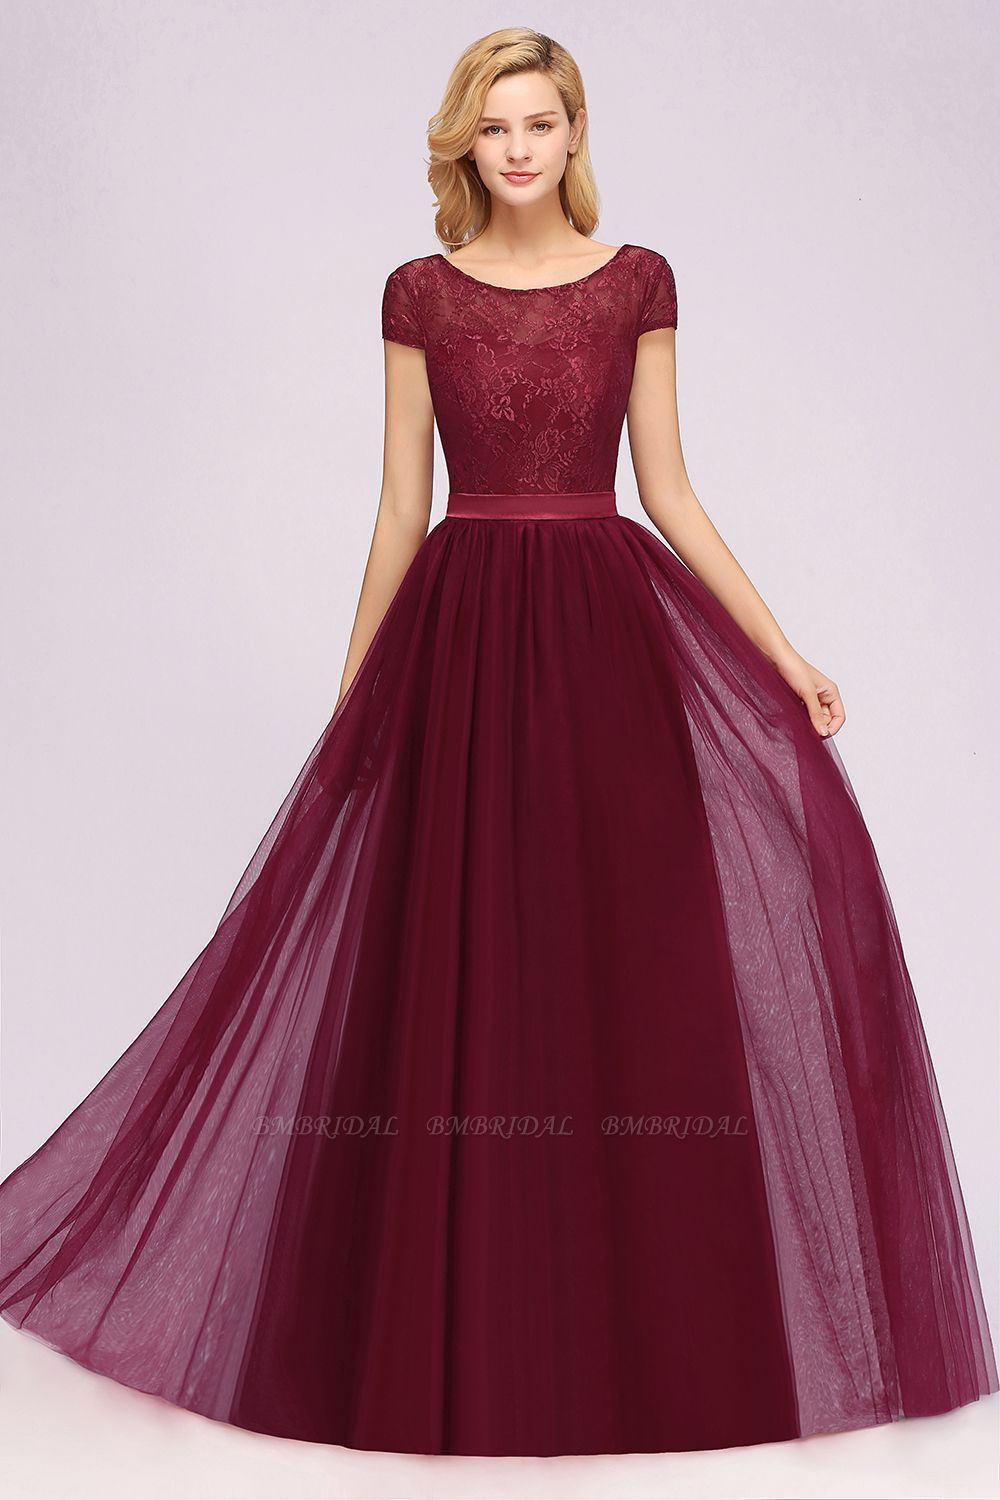 Elegant Lace Cap Sleeves Burgundy Bridesmaid Dresses Affordable